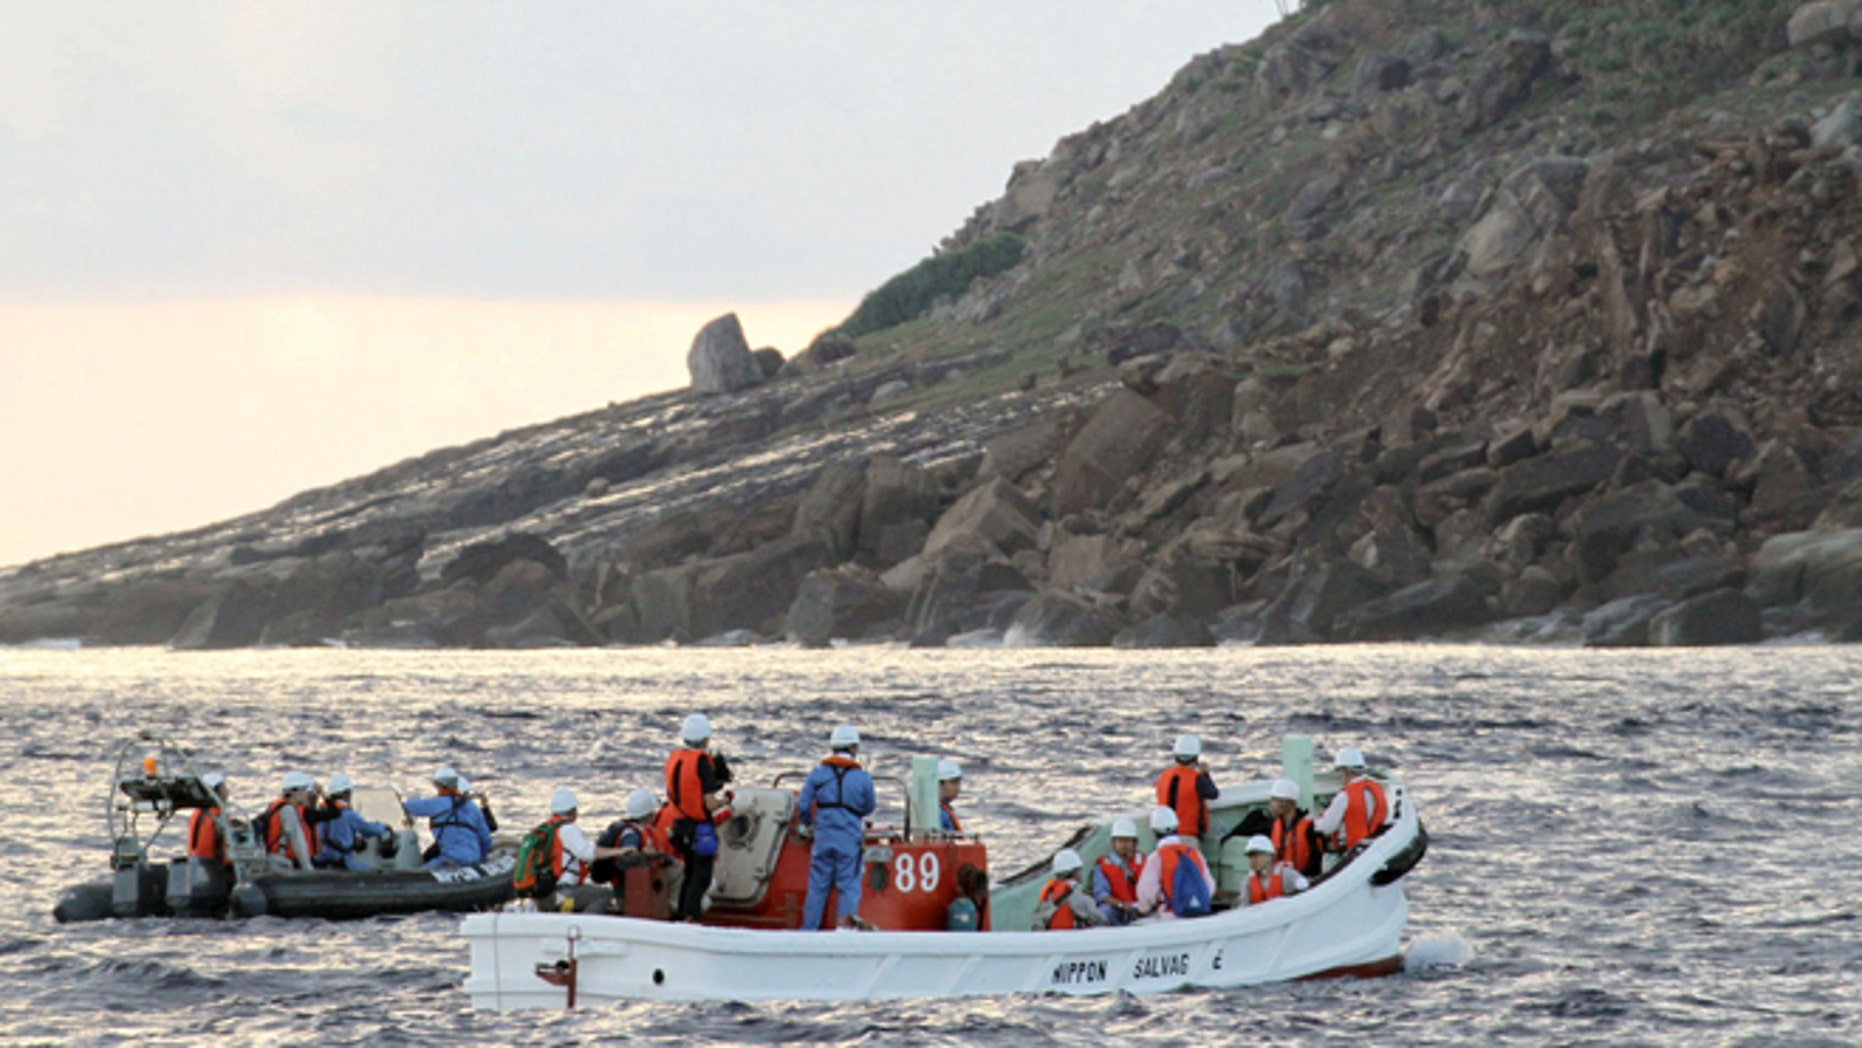 Sept. 2, 2012: Tokyo city officials and experts survey Uotsuri Island, one of the islands of Senkaku in Japanese and Diaoyu in Chinese, in the East China Sea.